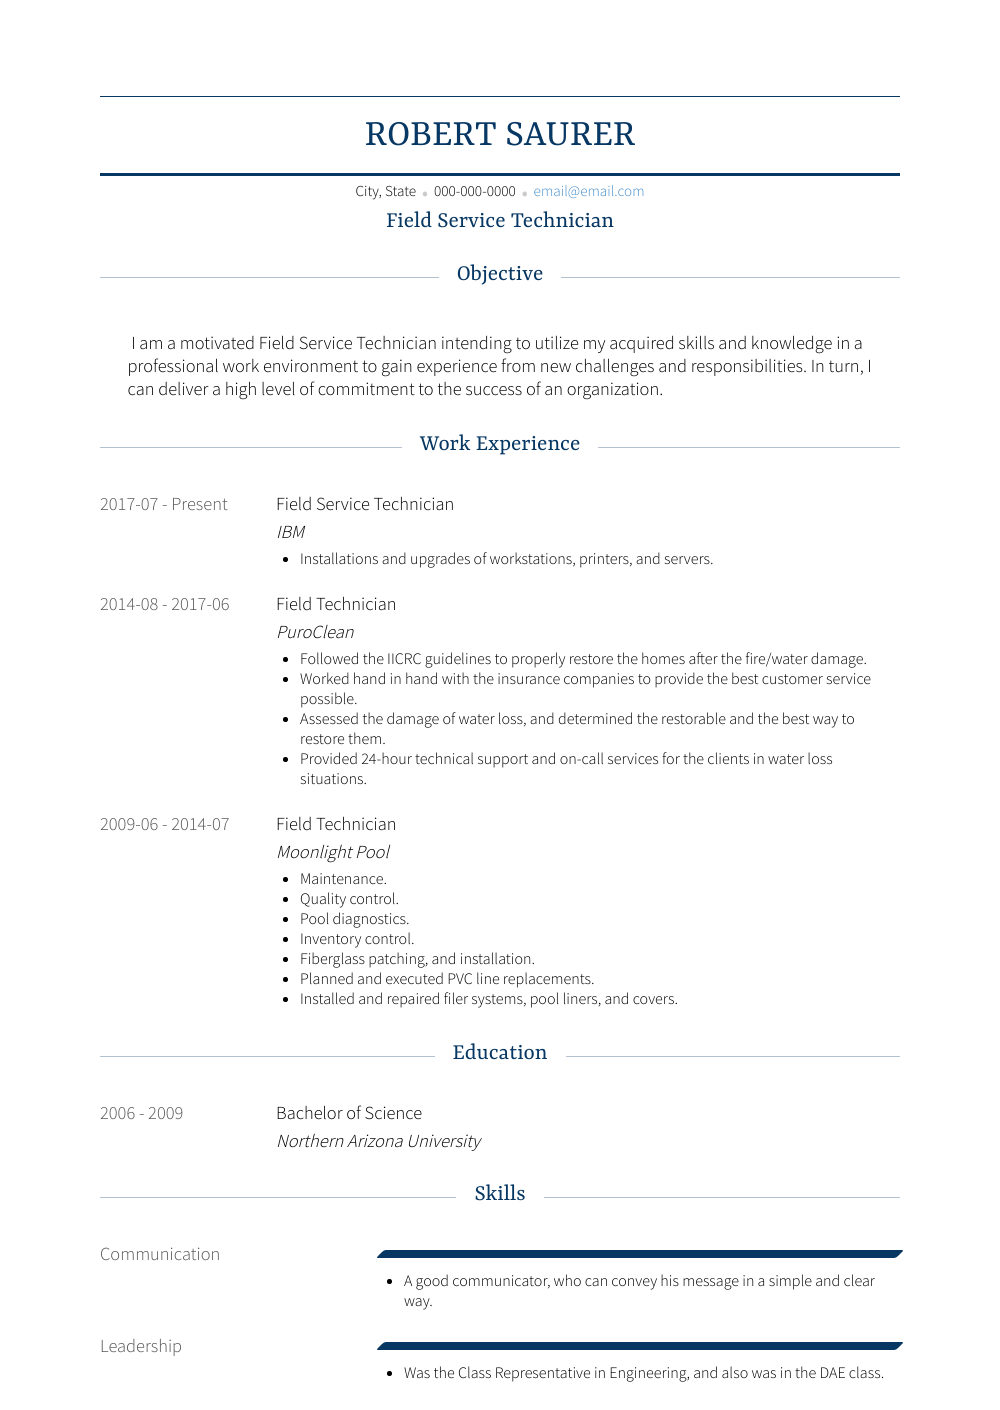 Field Service Technician Resume Sample and Template